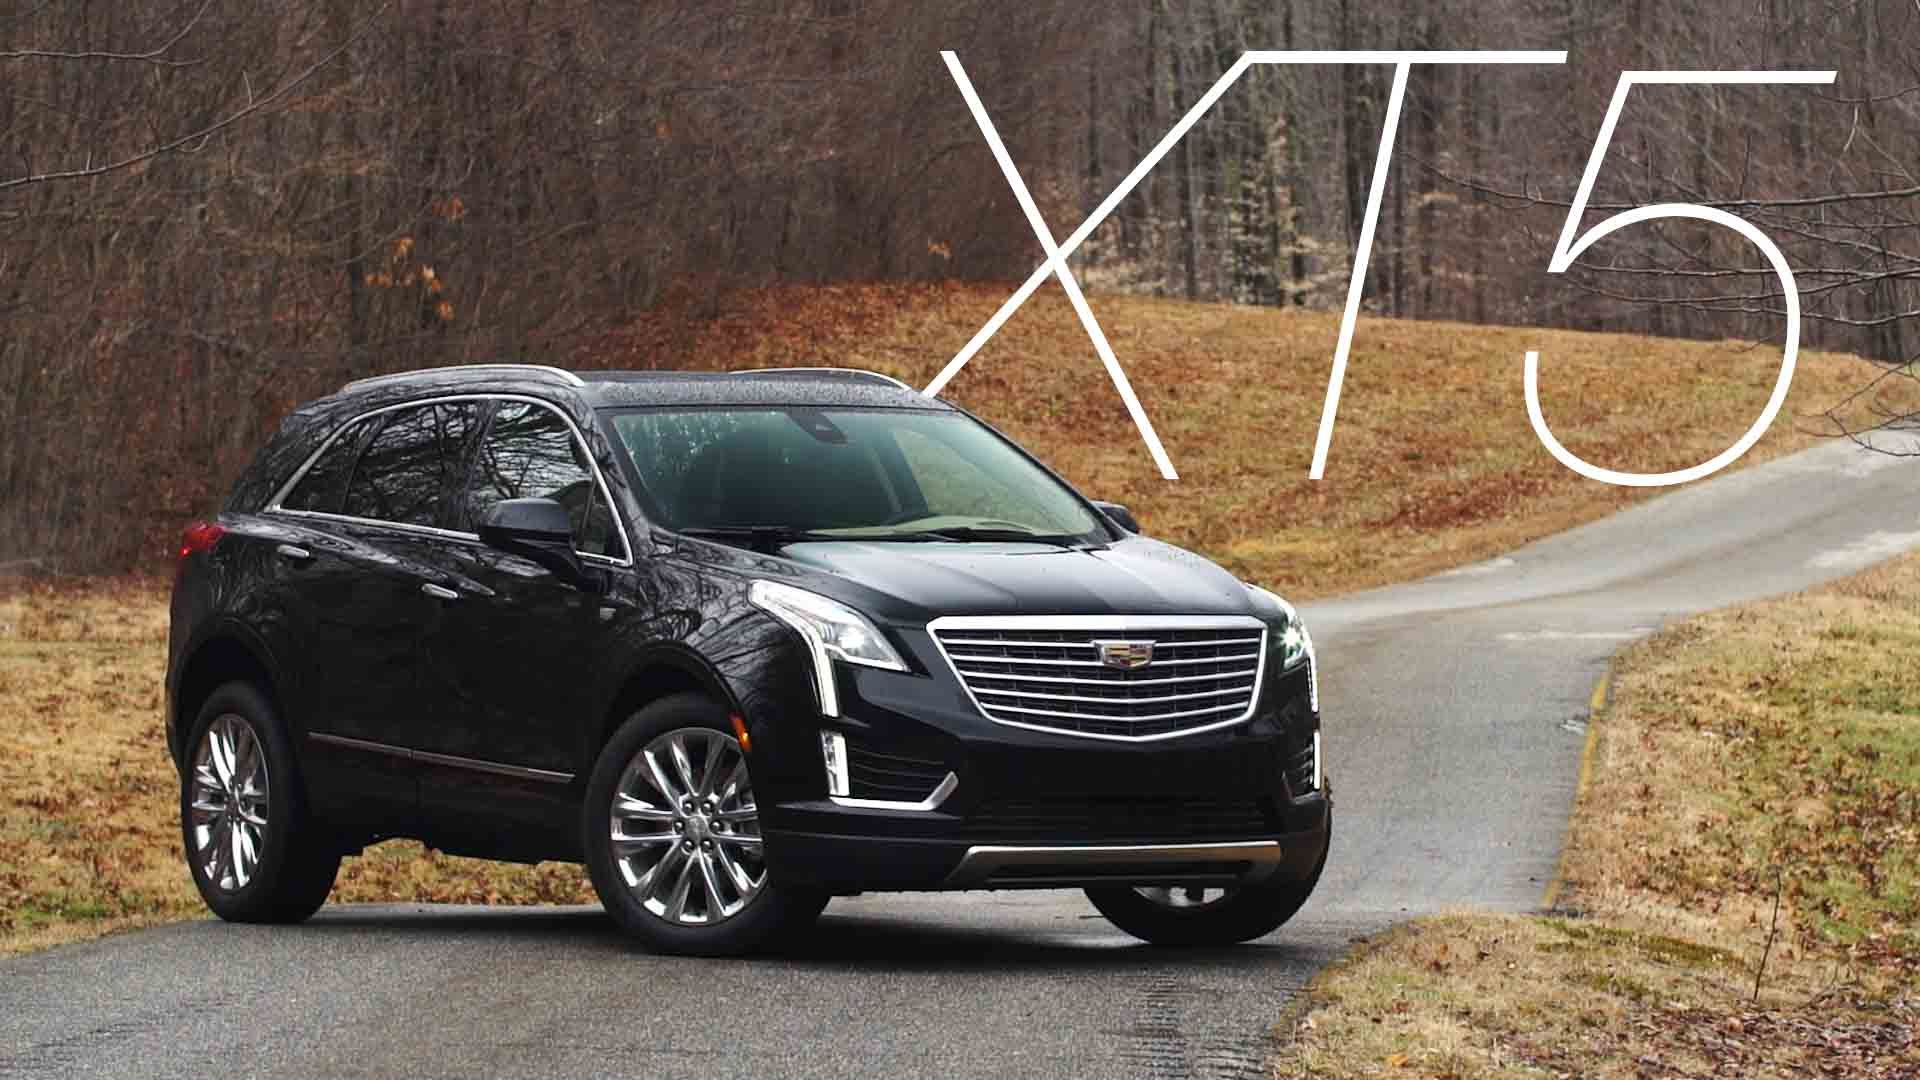 Cadillac Xt5 Loved By Consumer Reports Despite High Price